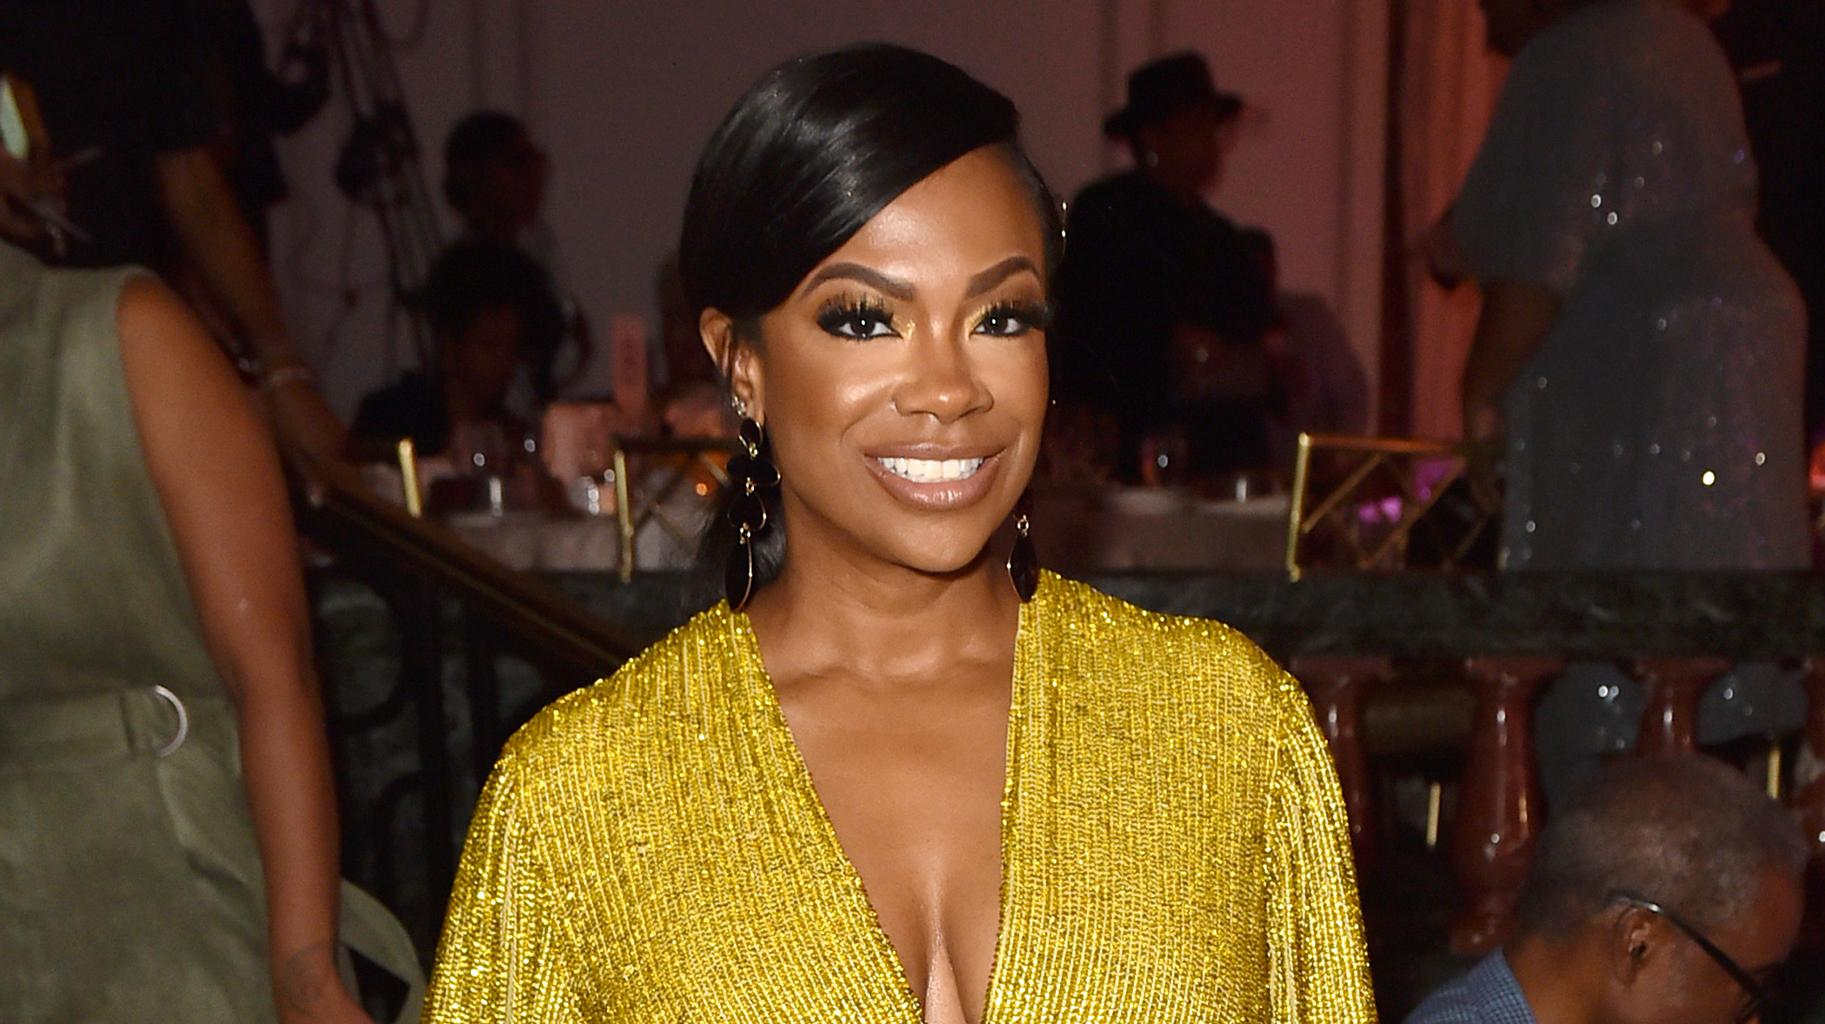 Kandi Burruss' Fans Are Going Crazy With Excitement Watching Season 3 Of 'The Chi'